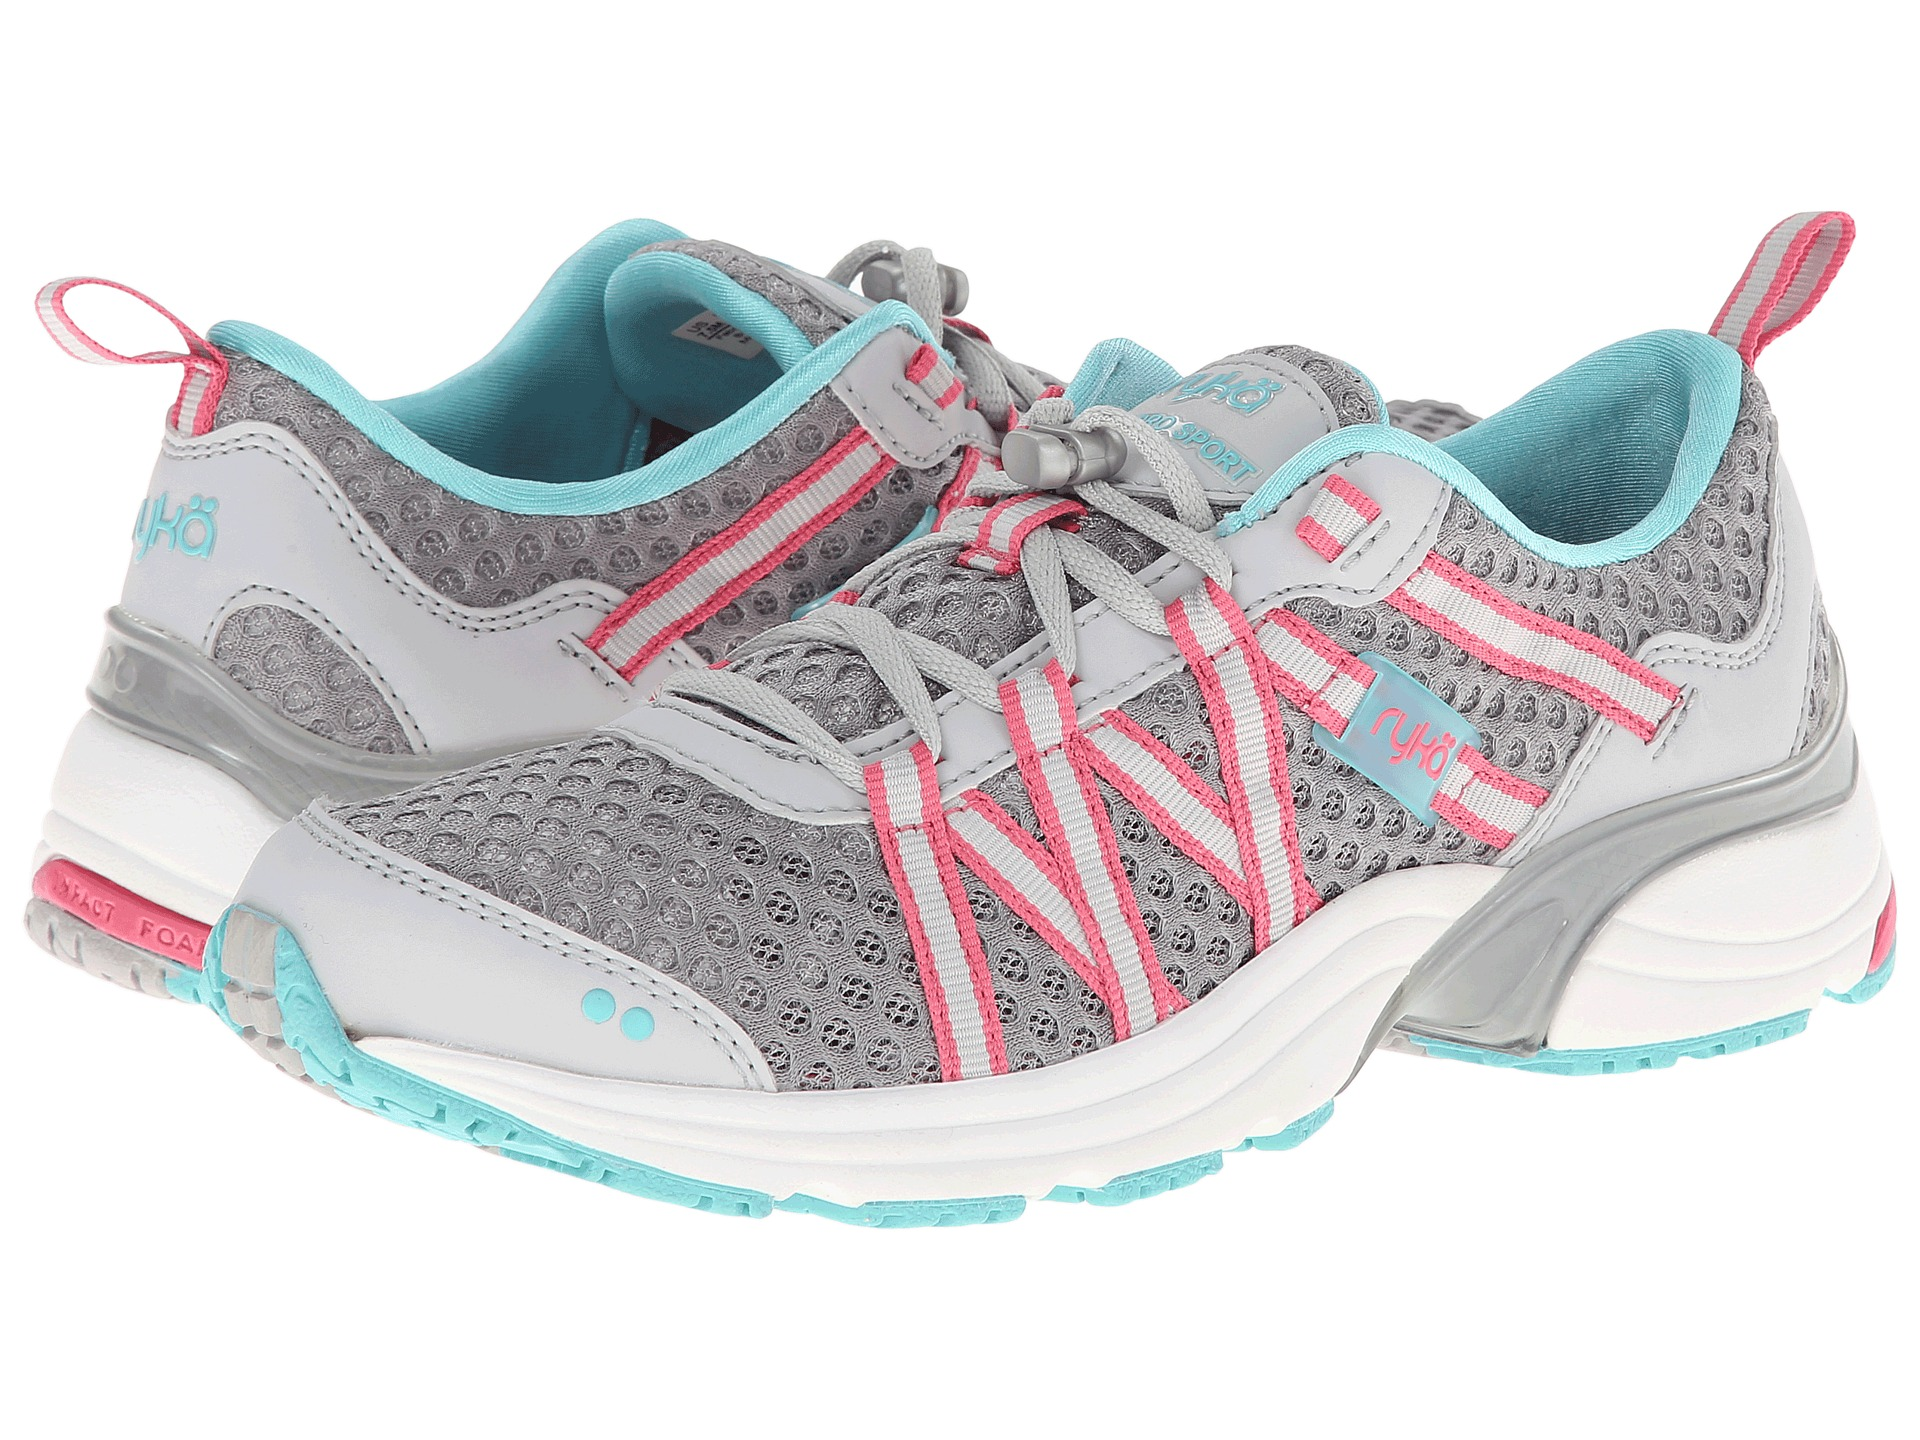 Ryka sandals shoes - View More Like This Ryka Hydro Sport Slp